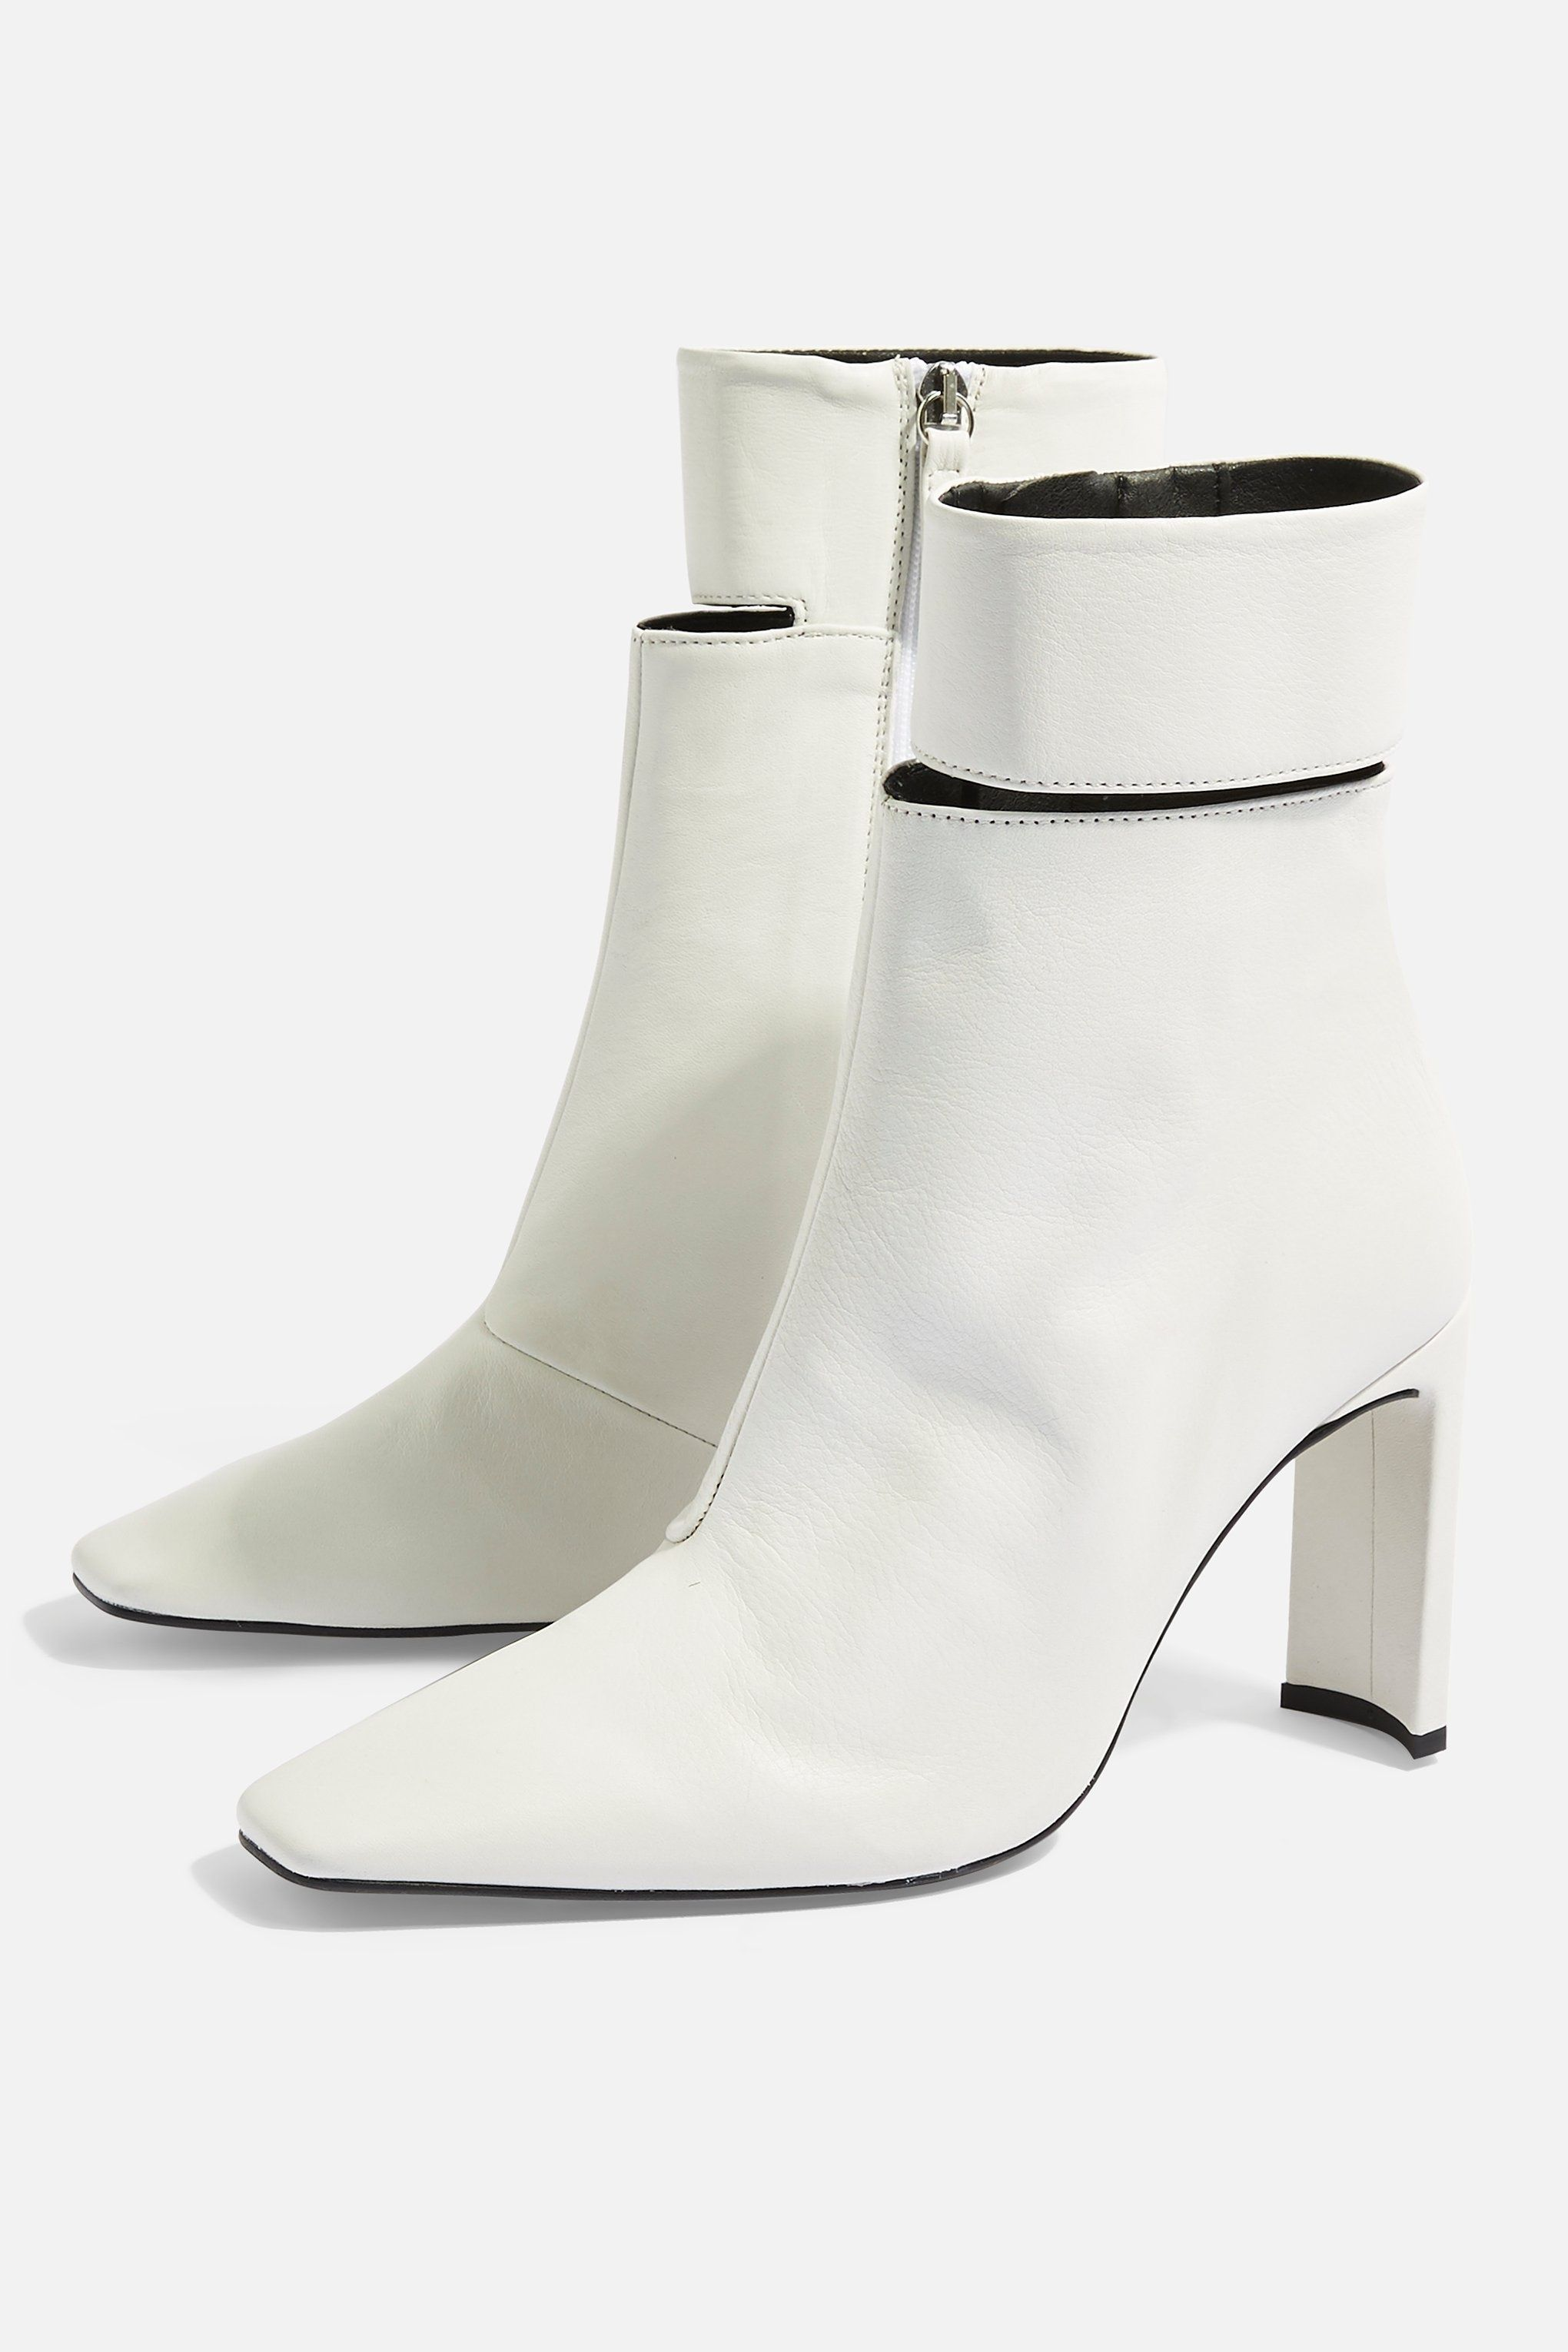 22f791611369 BUY NOW HENDRIK High Ankle Cuff Boots - New In Fashion - New In - Topshop